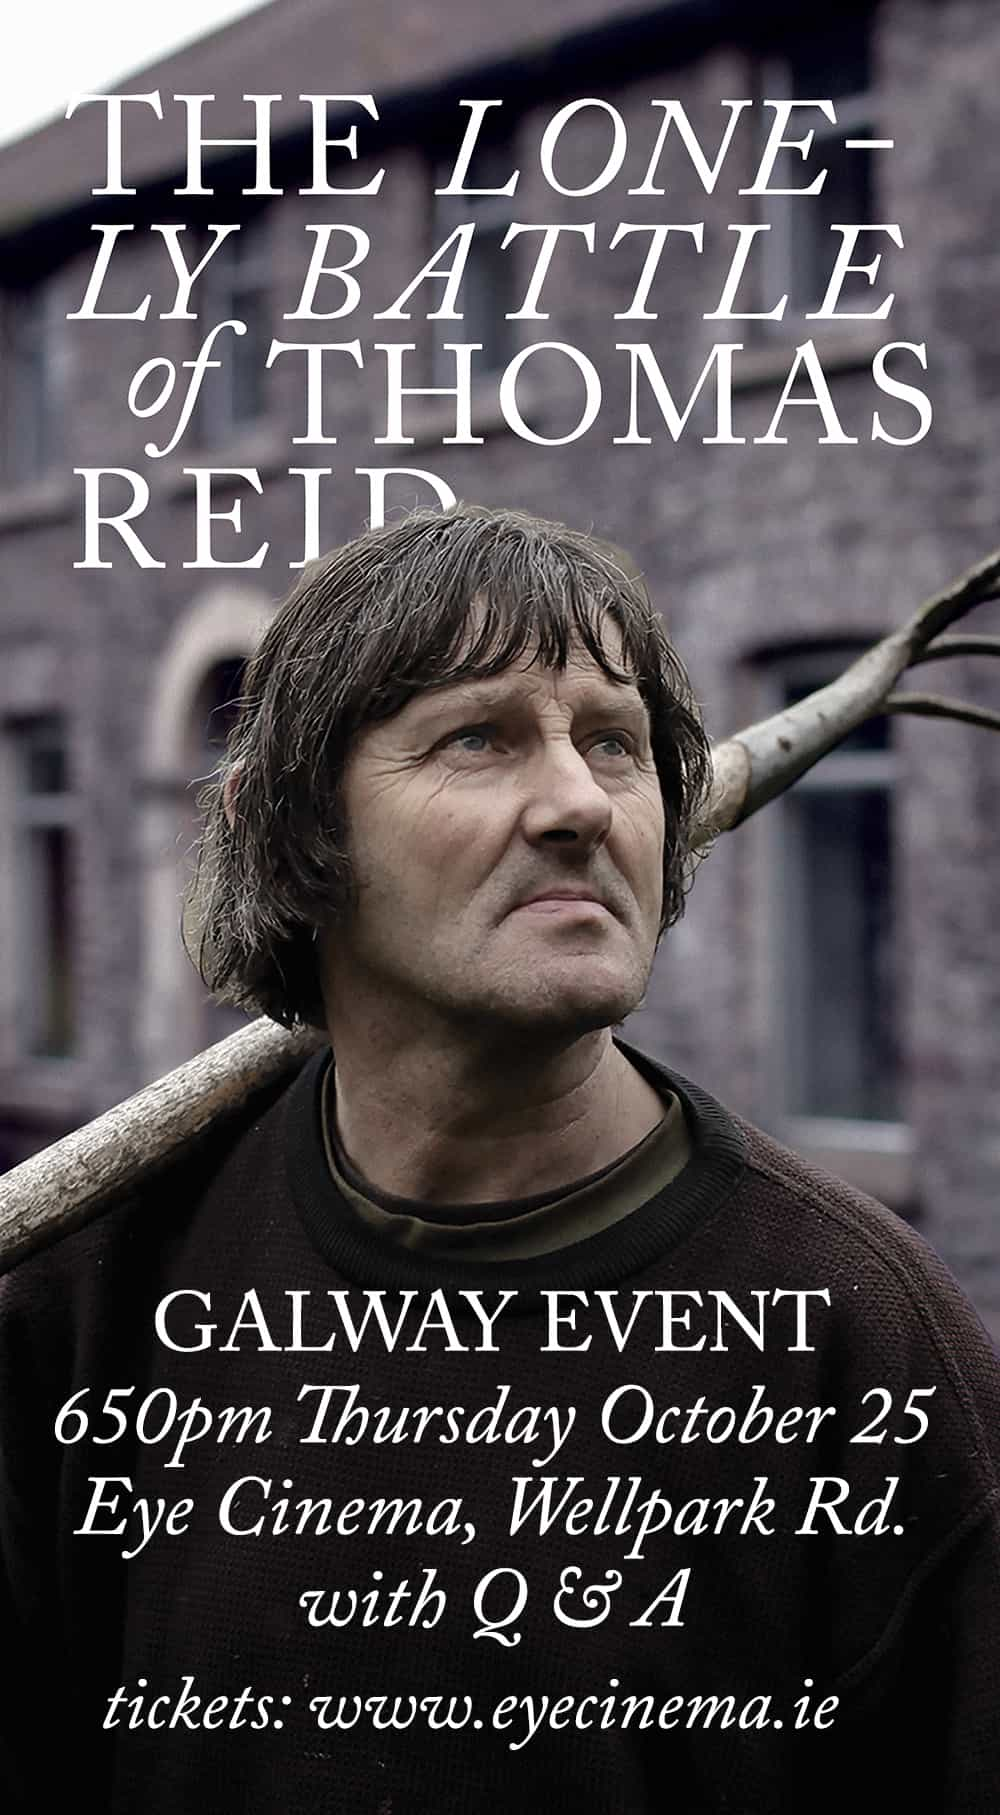 The Lonely Battle of Thomas Reid – EVENT SCREENING & PANEL CHAT